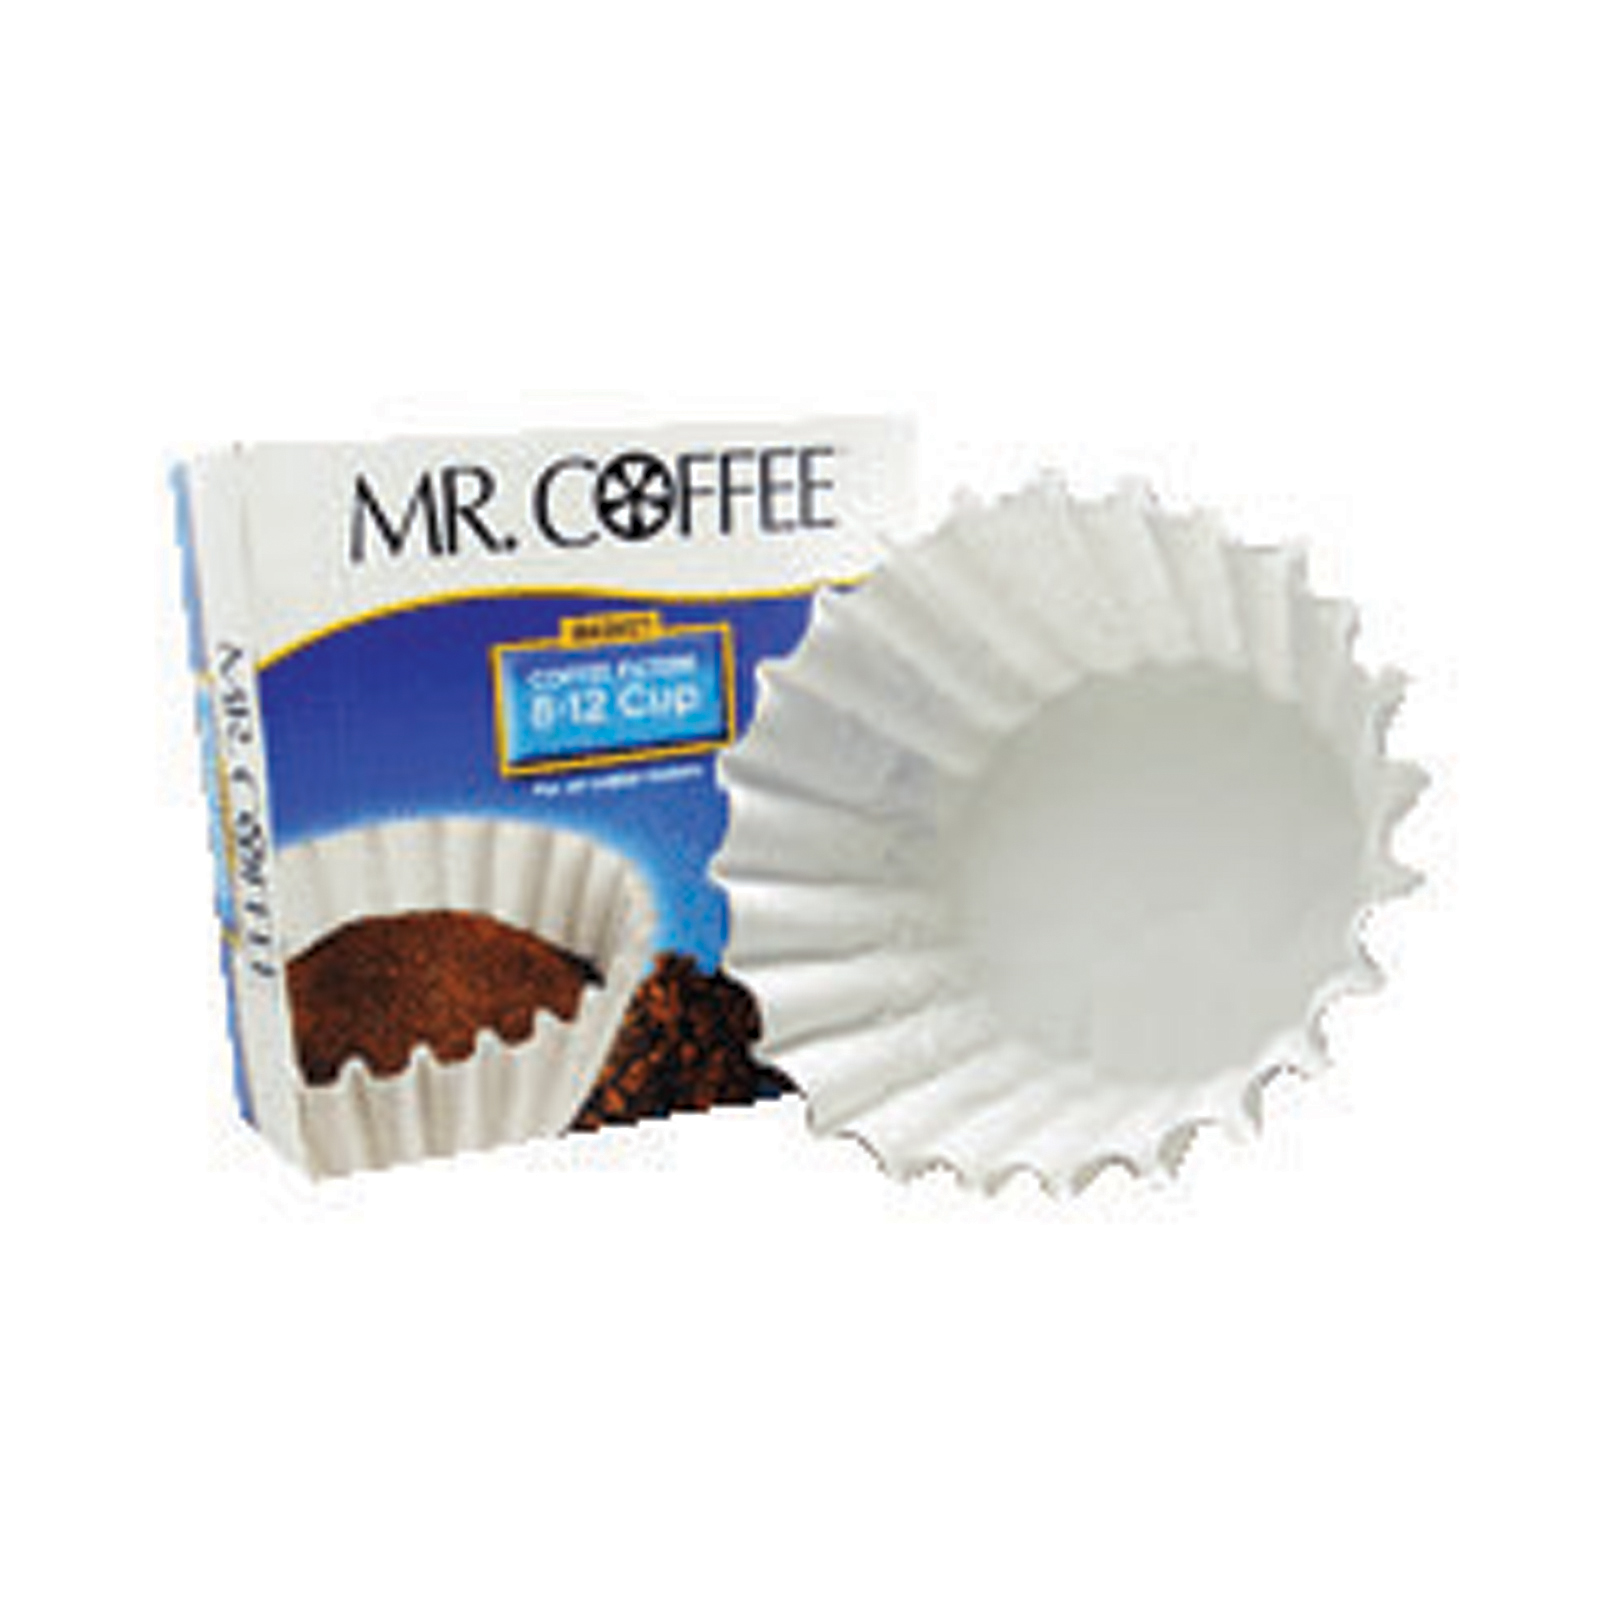 Mr. Coffee Filters, 100 Ct 1 Pkg by Mr. Coffee